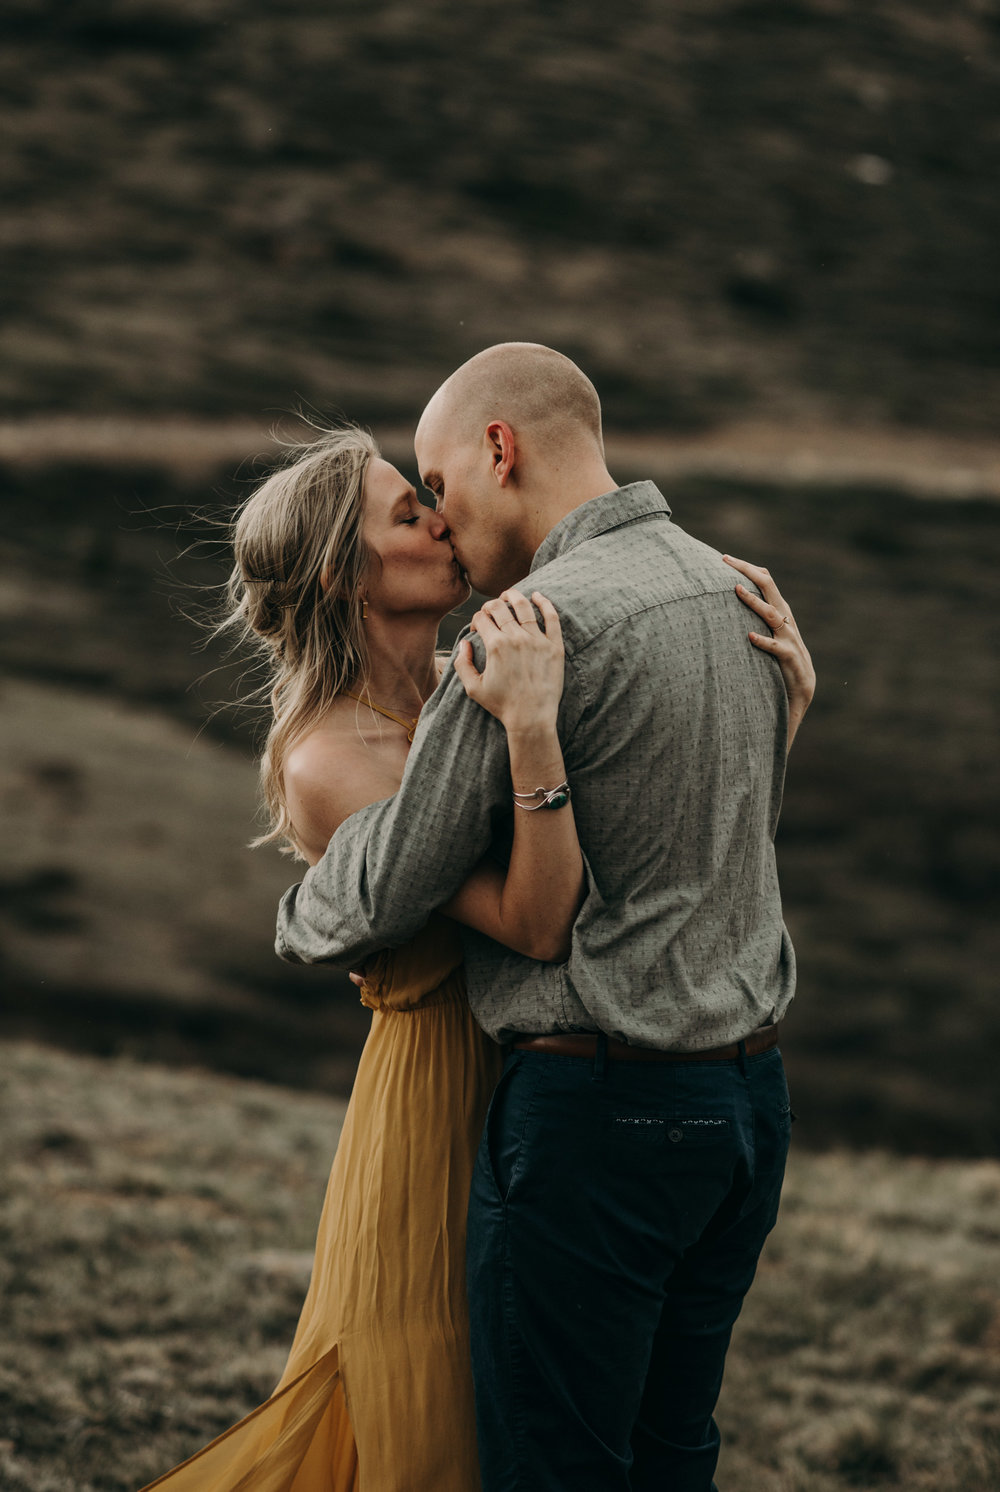 Wedding photographer in Colorado. Colorado elopement photos.